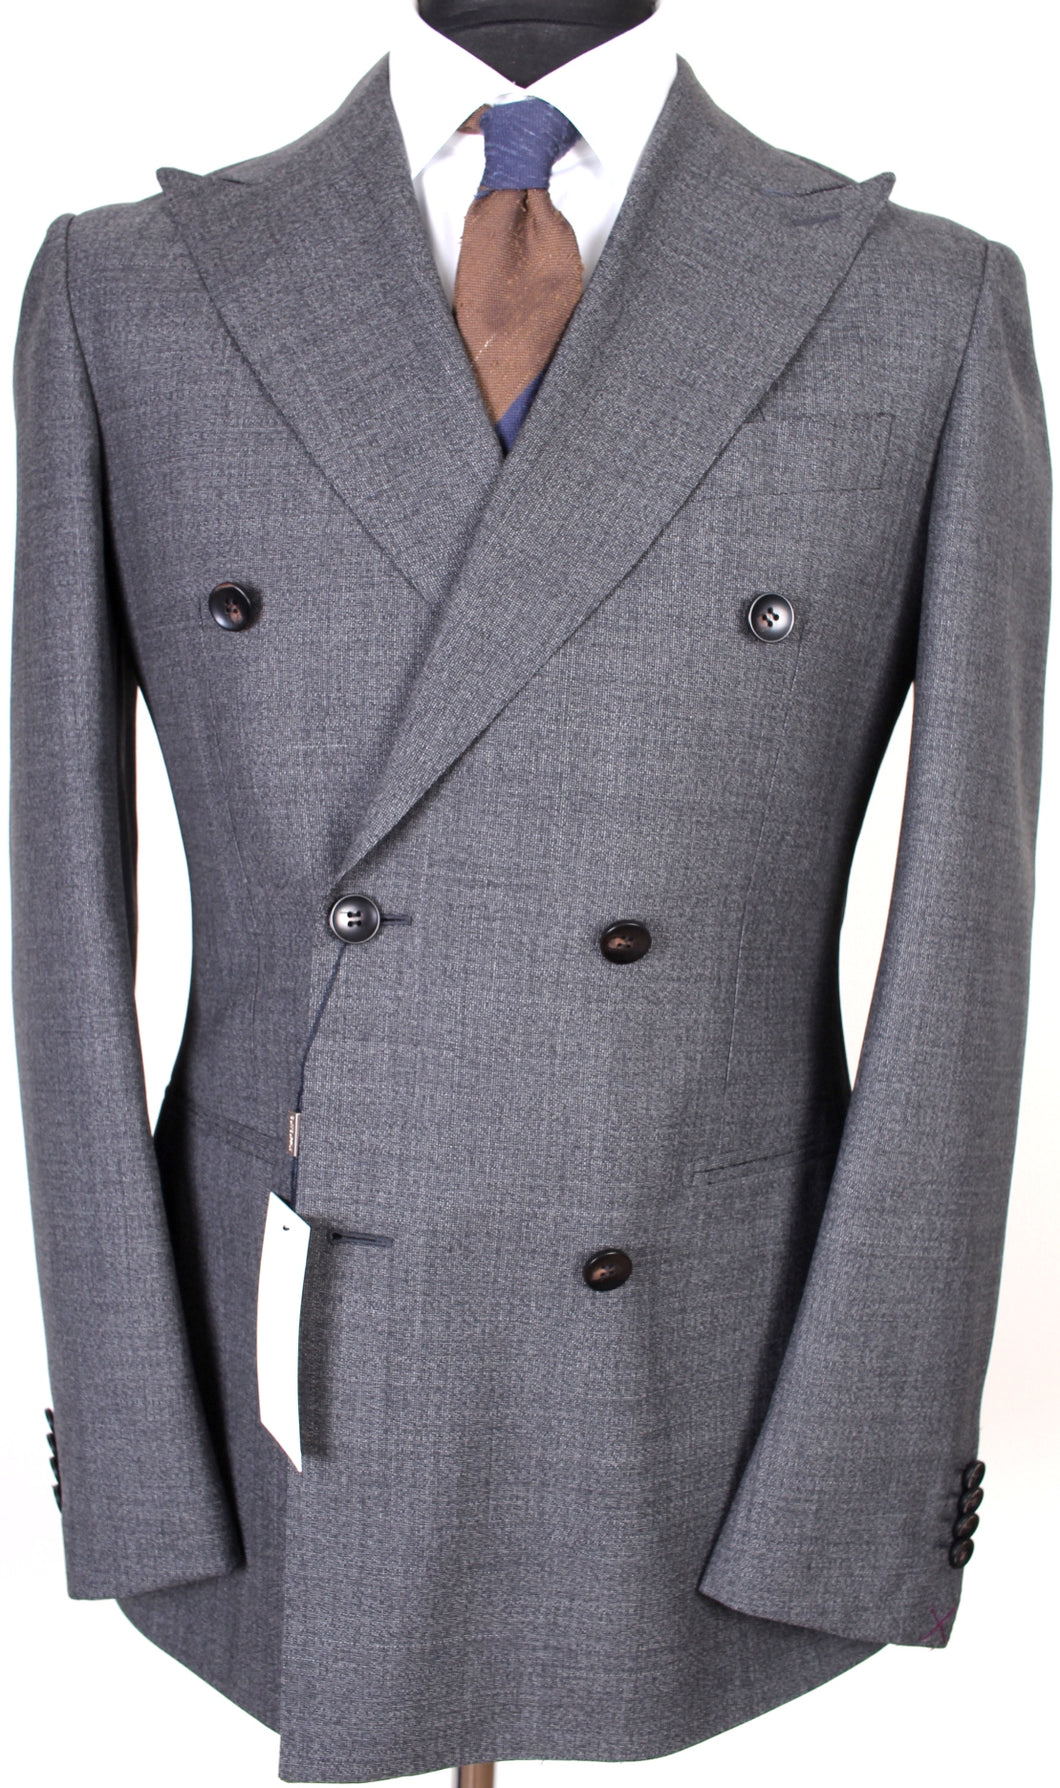 New Suitsupply Havana Mid Gray 100% Wool DB Suit - Size 36R *RARE*